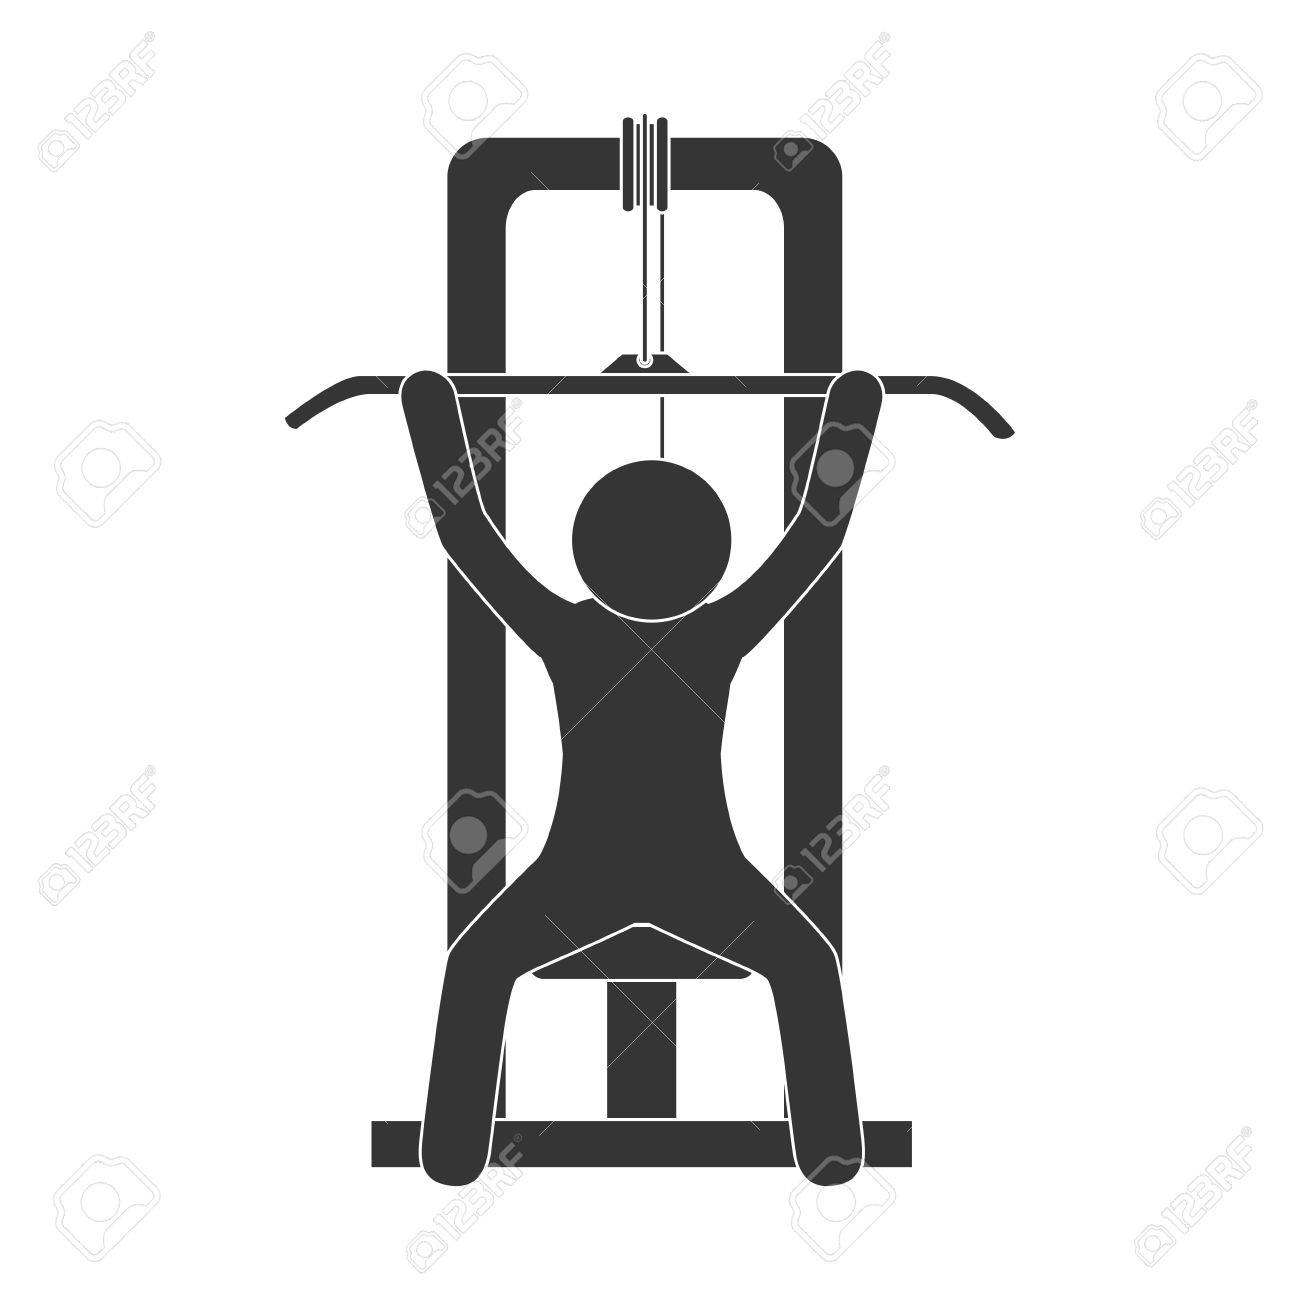 Man Gym Equipment Weight Training Sport Fitness Machine Vector Royalty Free Cliparts Vectors And Stock Illustration Image 61299088